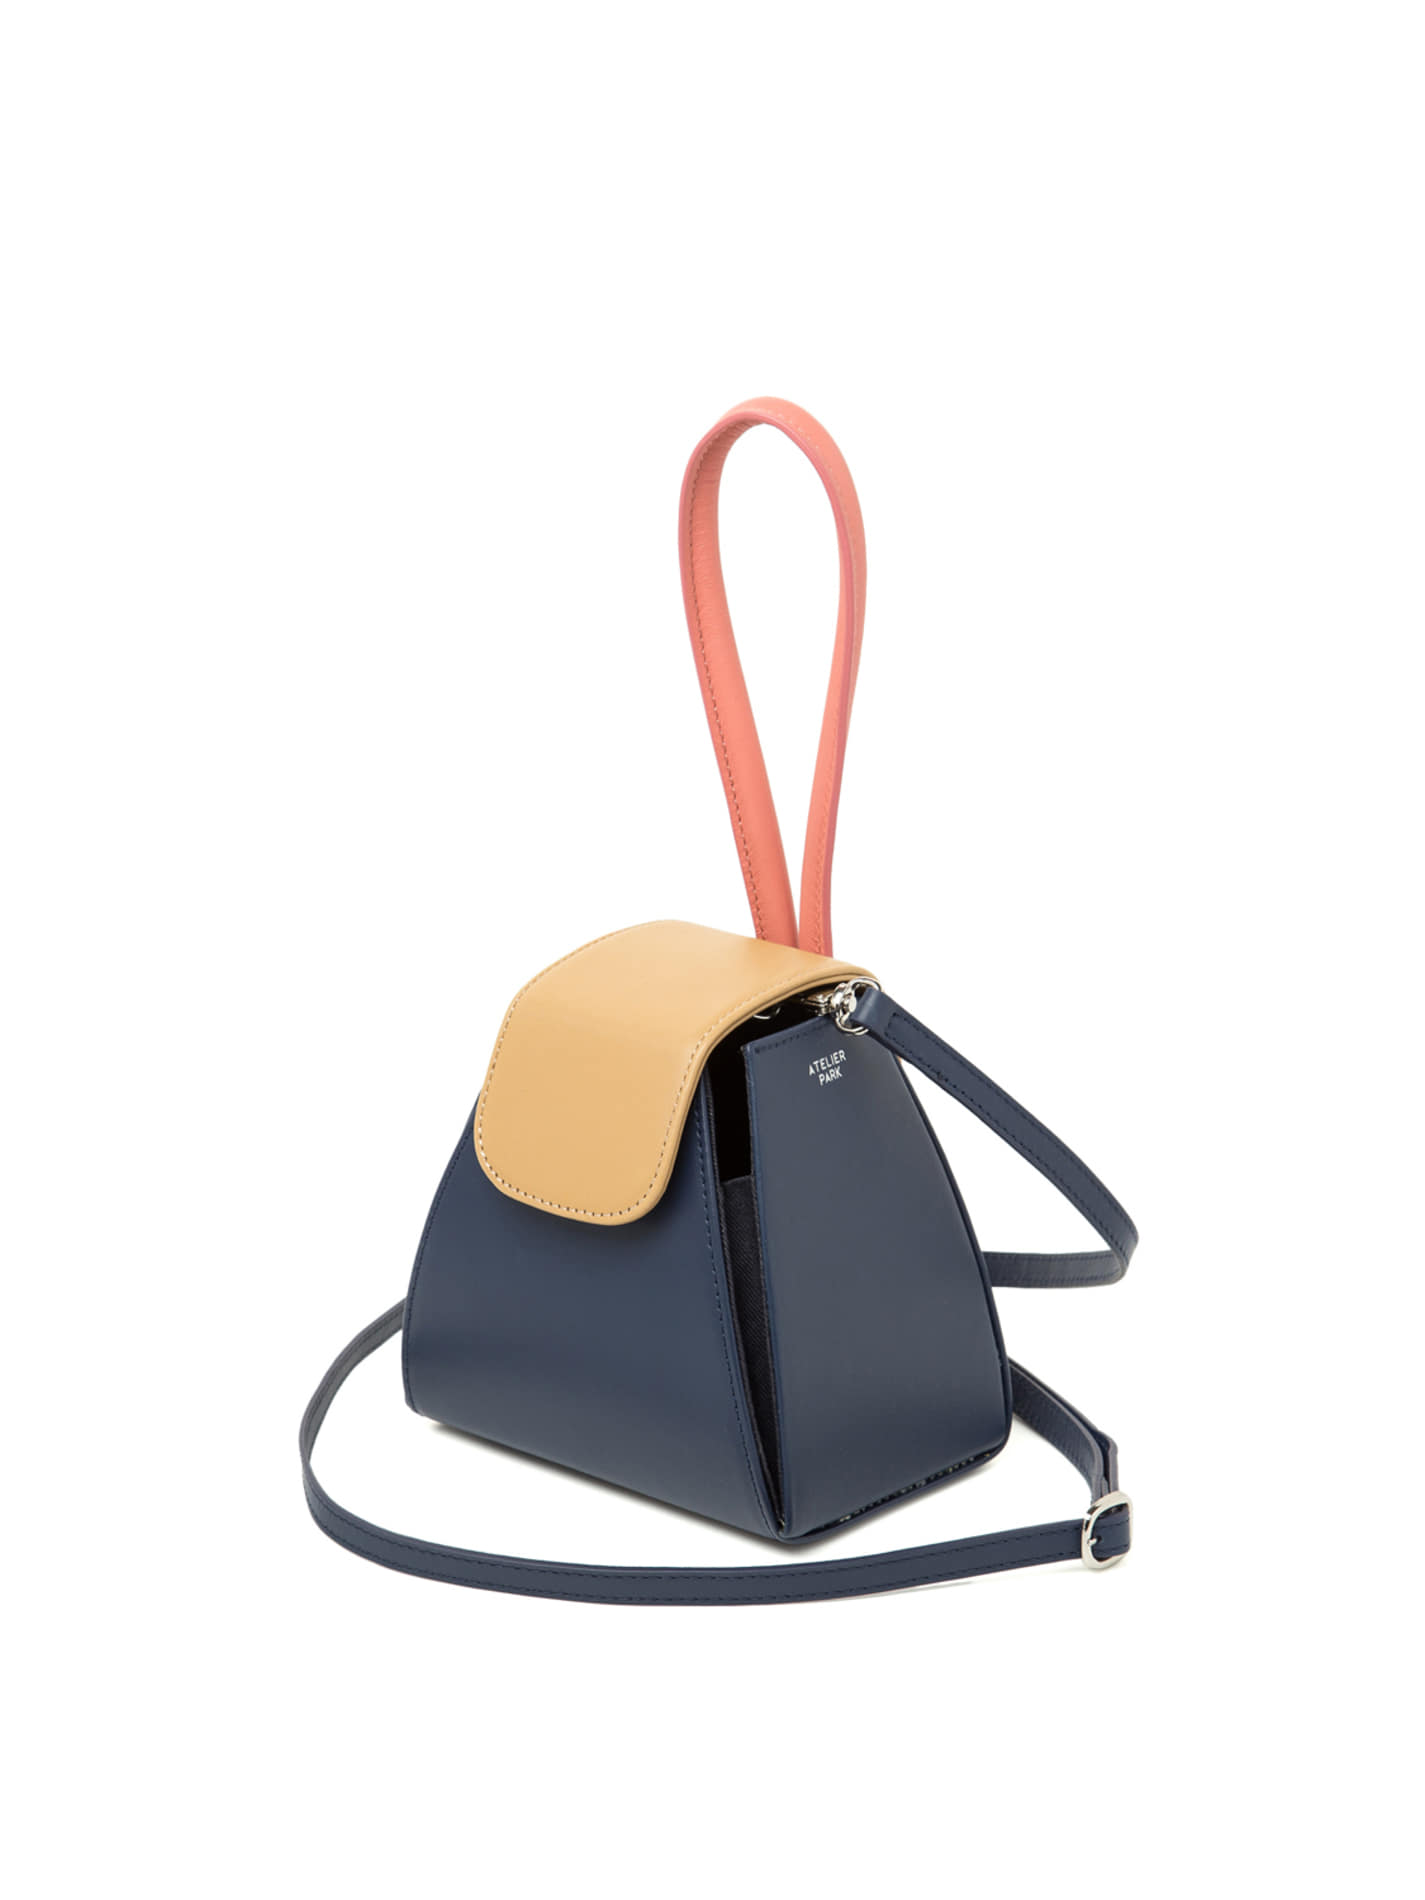 COLOR BLOCK HANDLE BAG -NAVY / BEIGE PINK (레더스트랩포함)